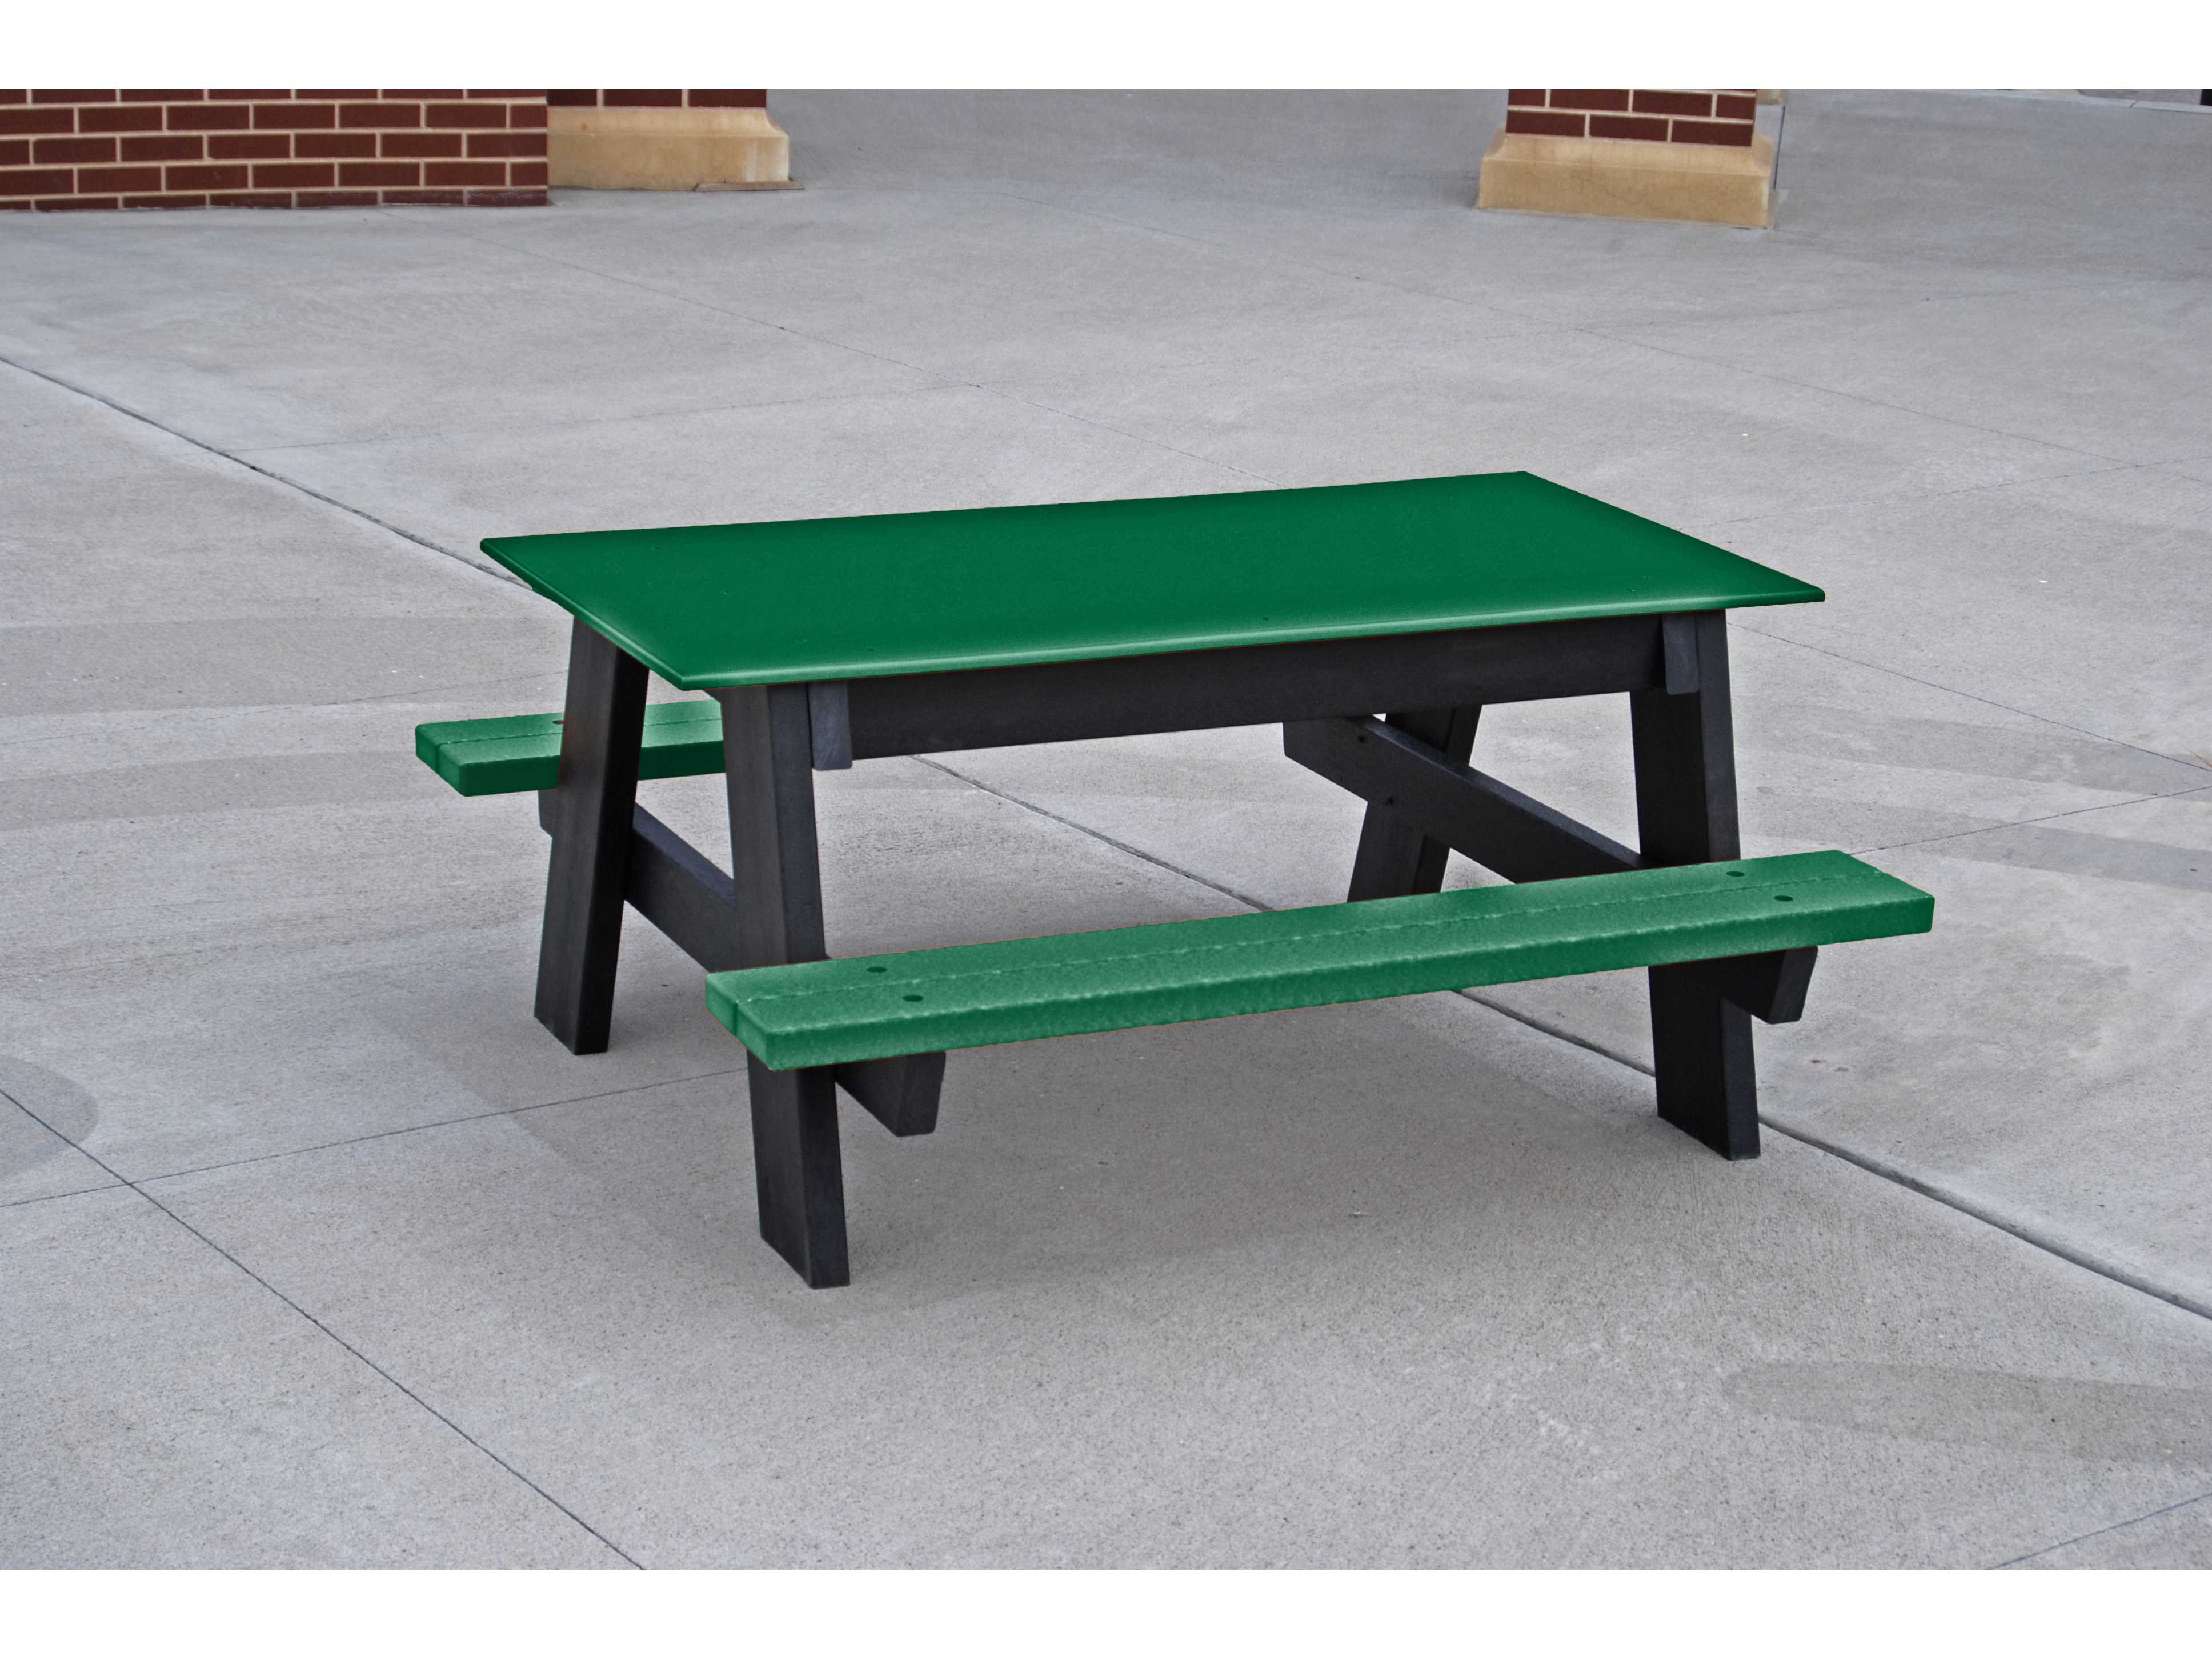 benches recycled building single product plastic supplies furniture bench